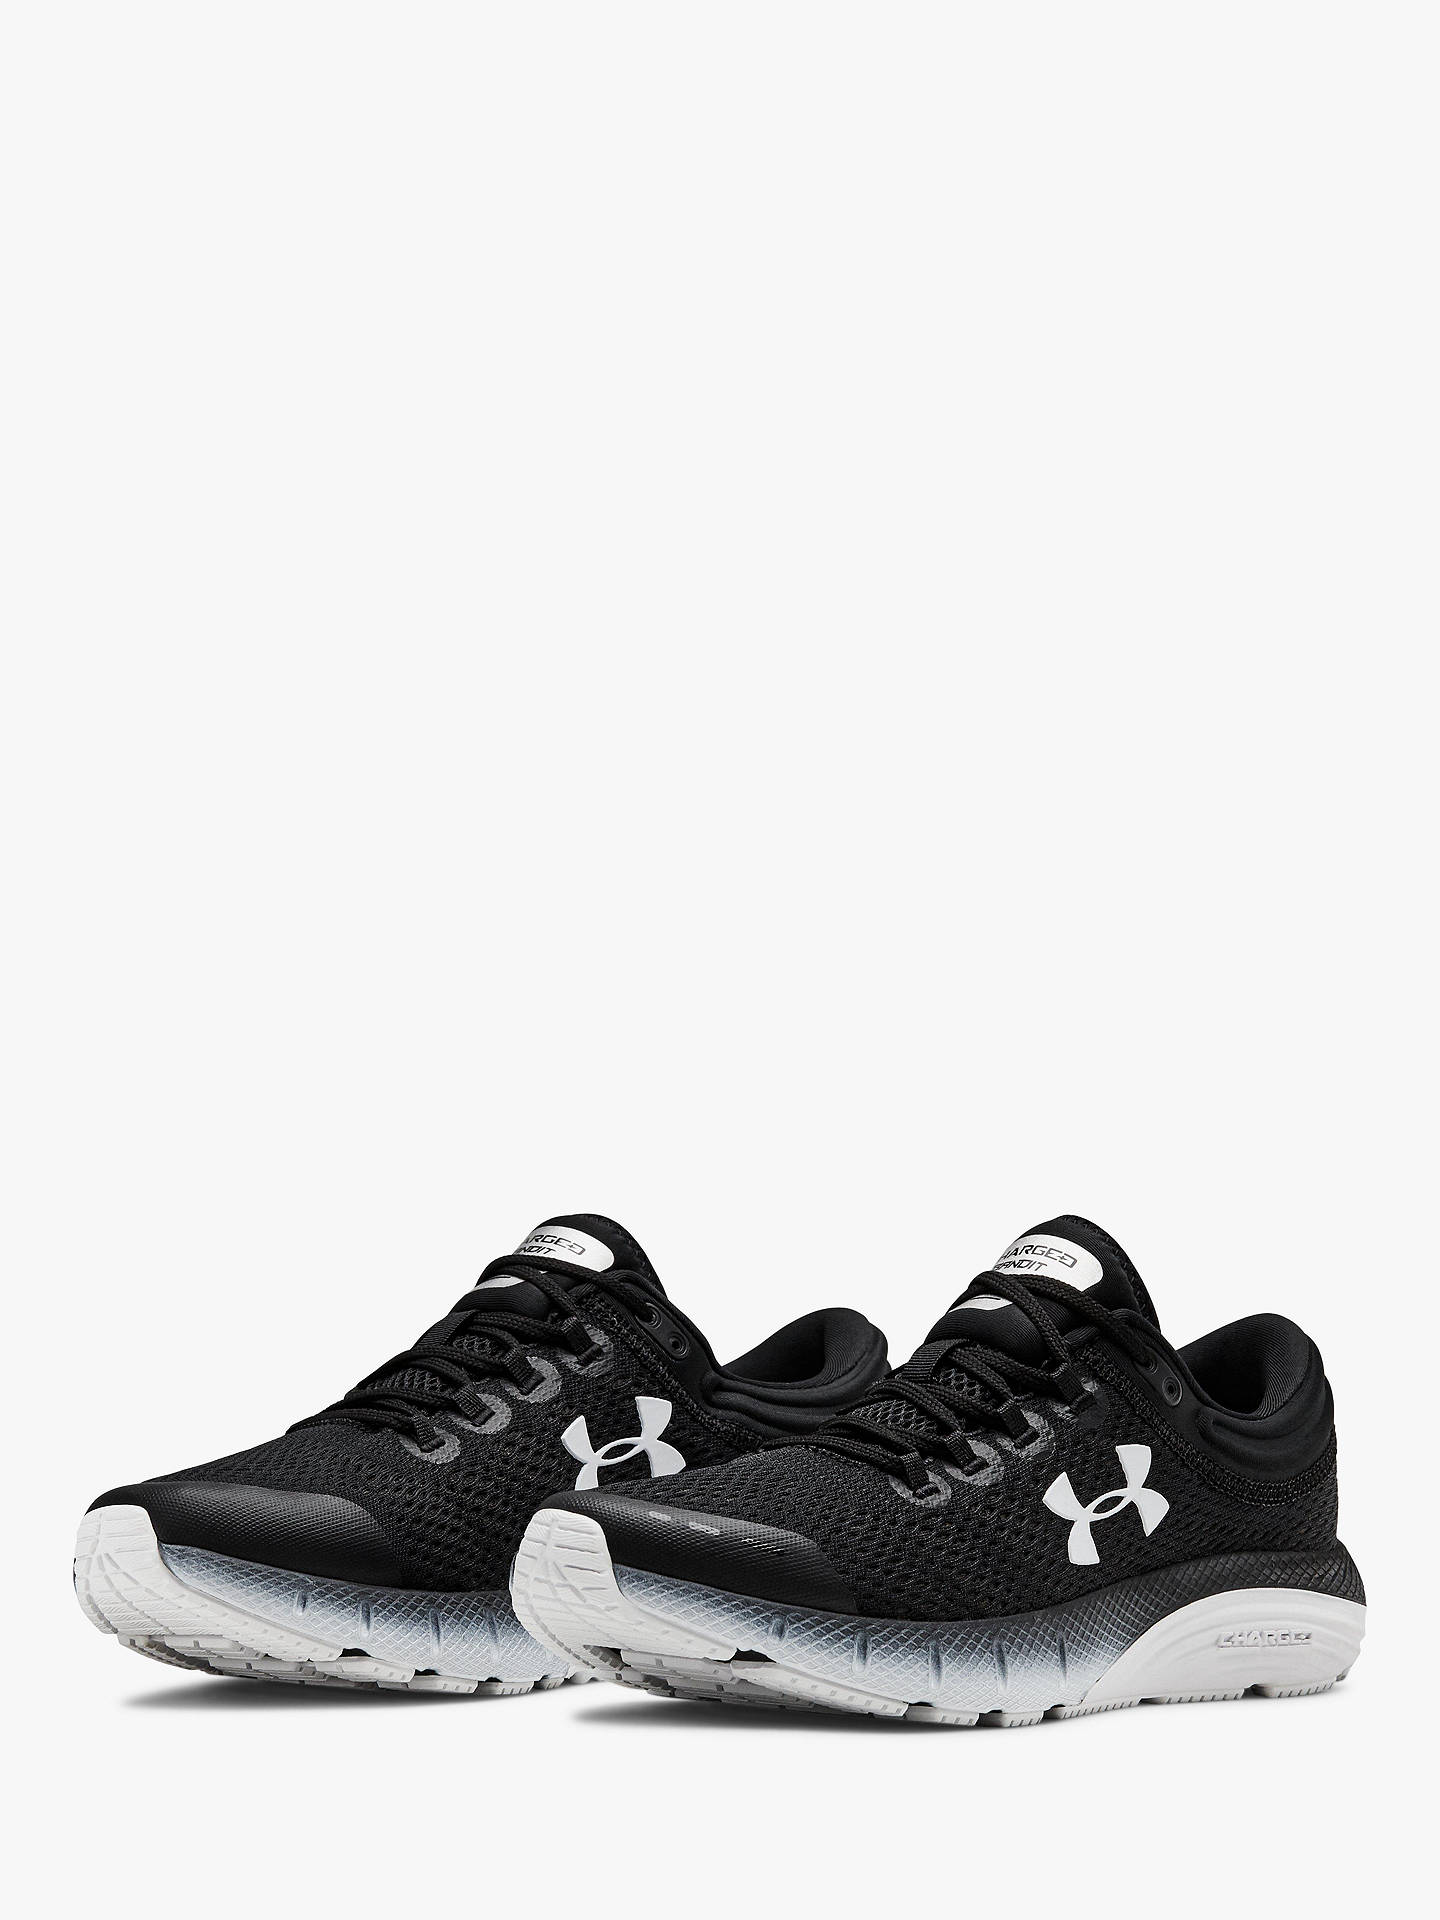 official photos 38235 43d0c Under Armour Charged Bandit 5 Women's Running Shoes, Black/White